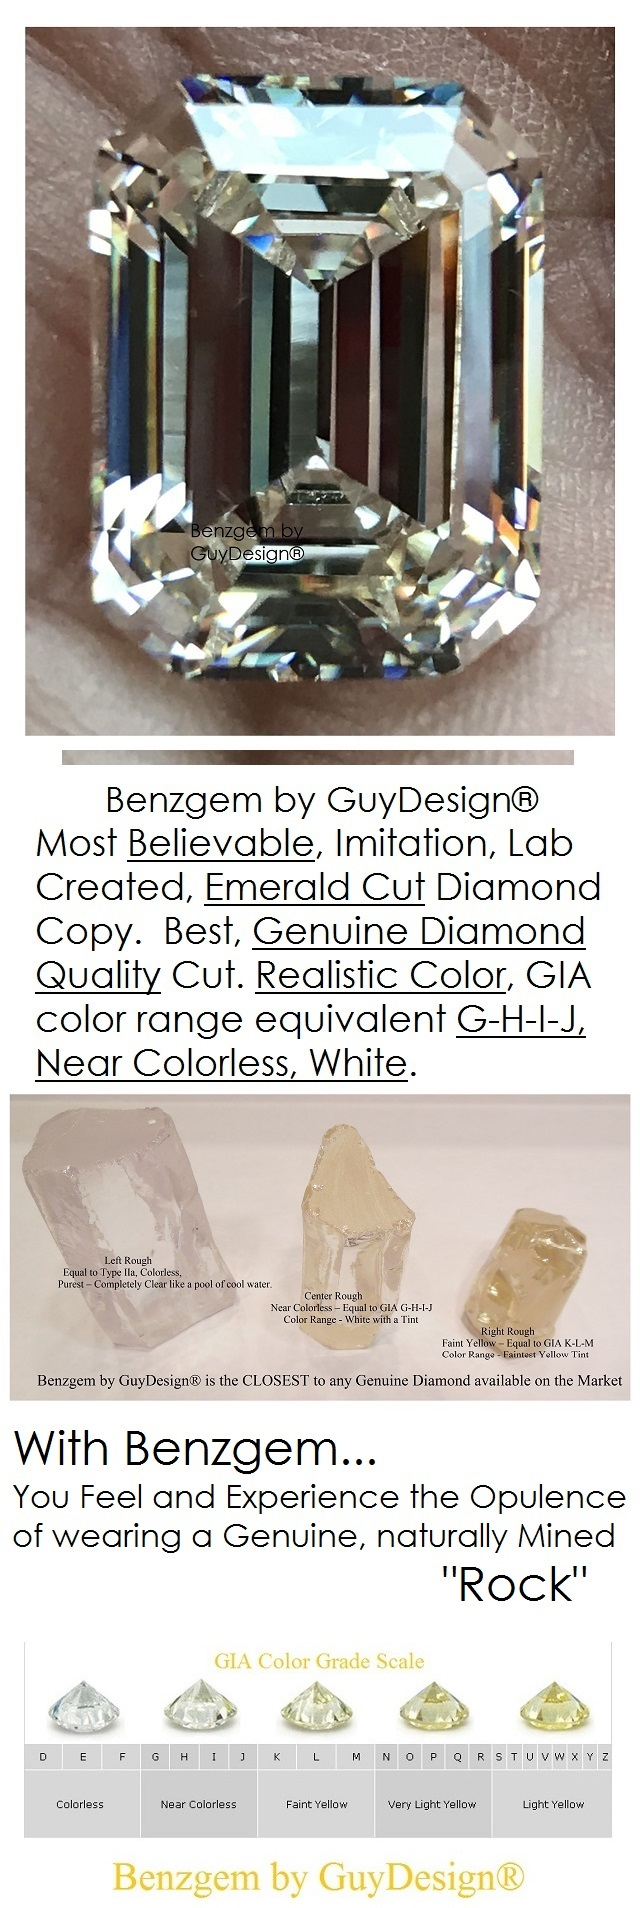 benzgem-by-guydesign-best-diamond-quality-cut-emerald-shape-g-h-i-j-color-640-x-761-pixels-description.jpg